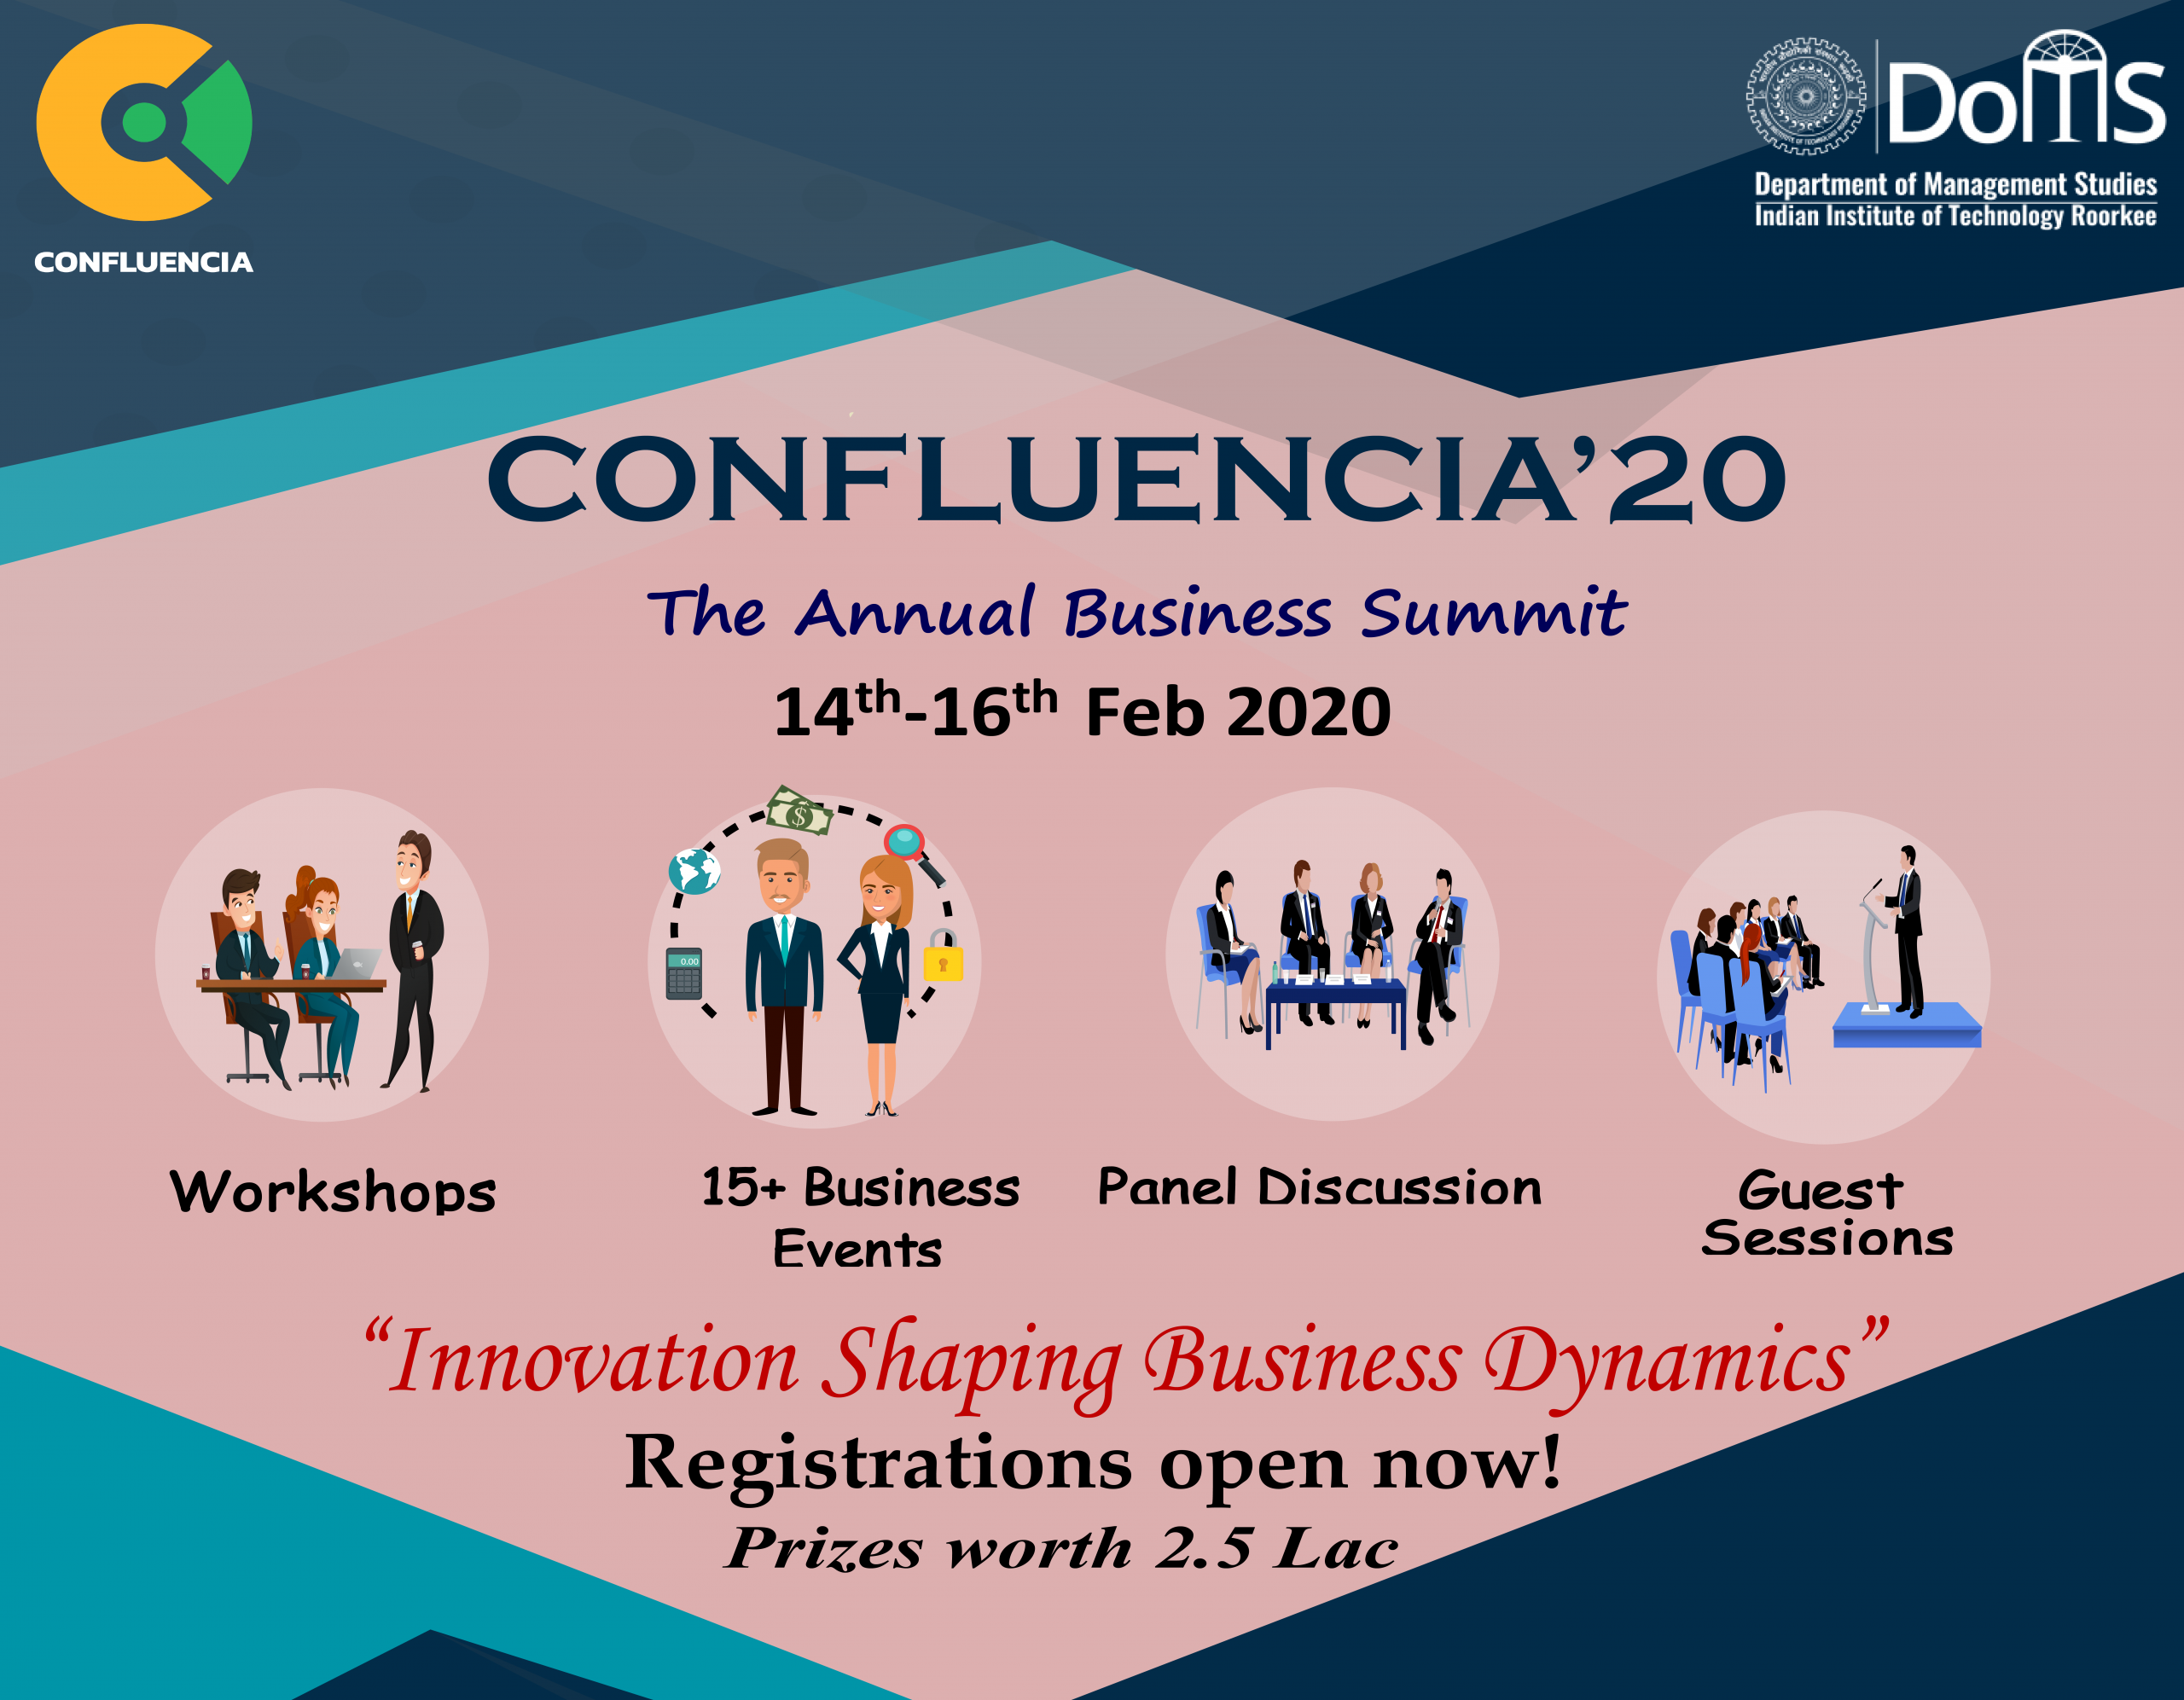 Confluencia-The Annual Business Summit of IIT Roorkee